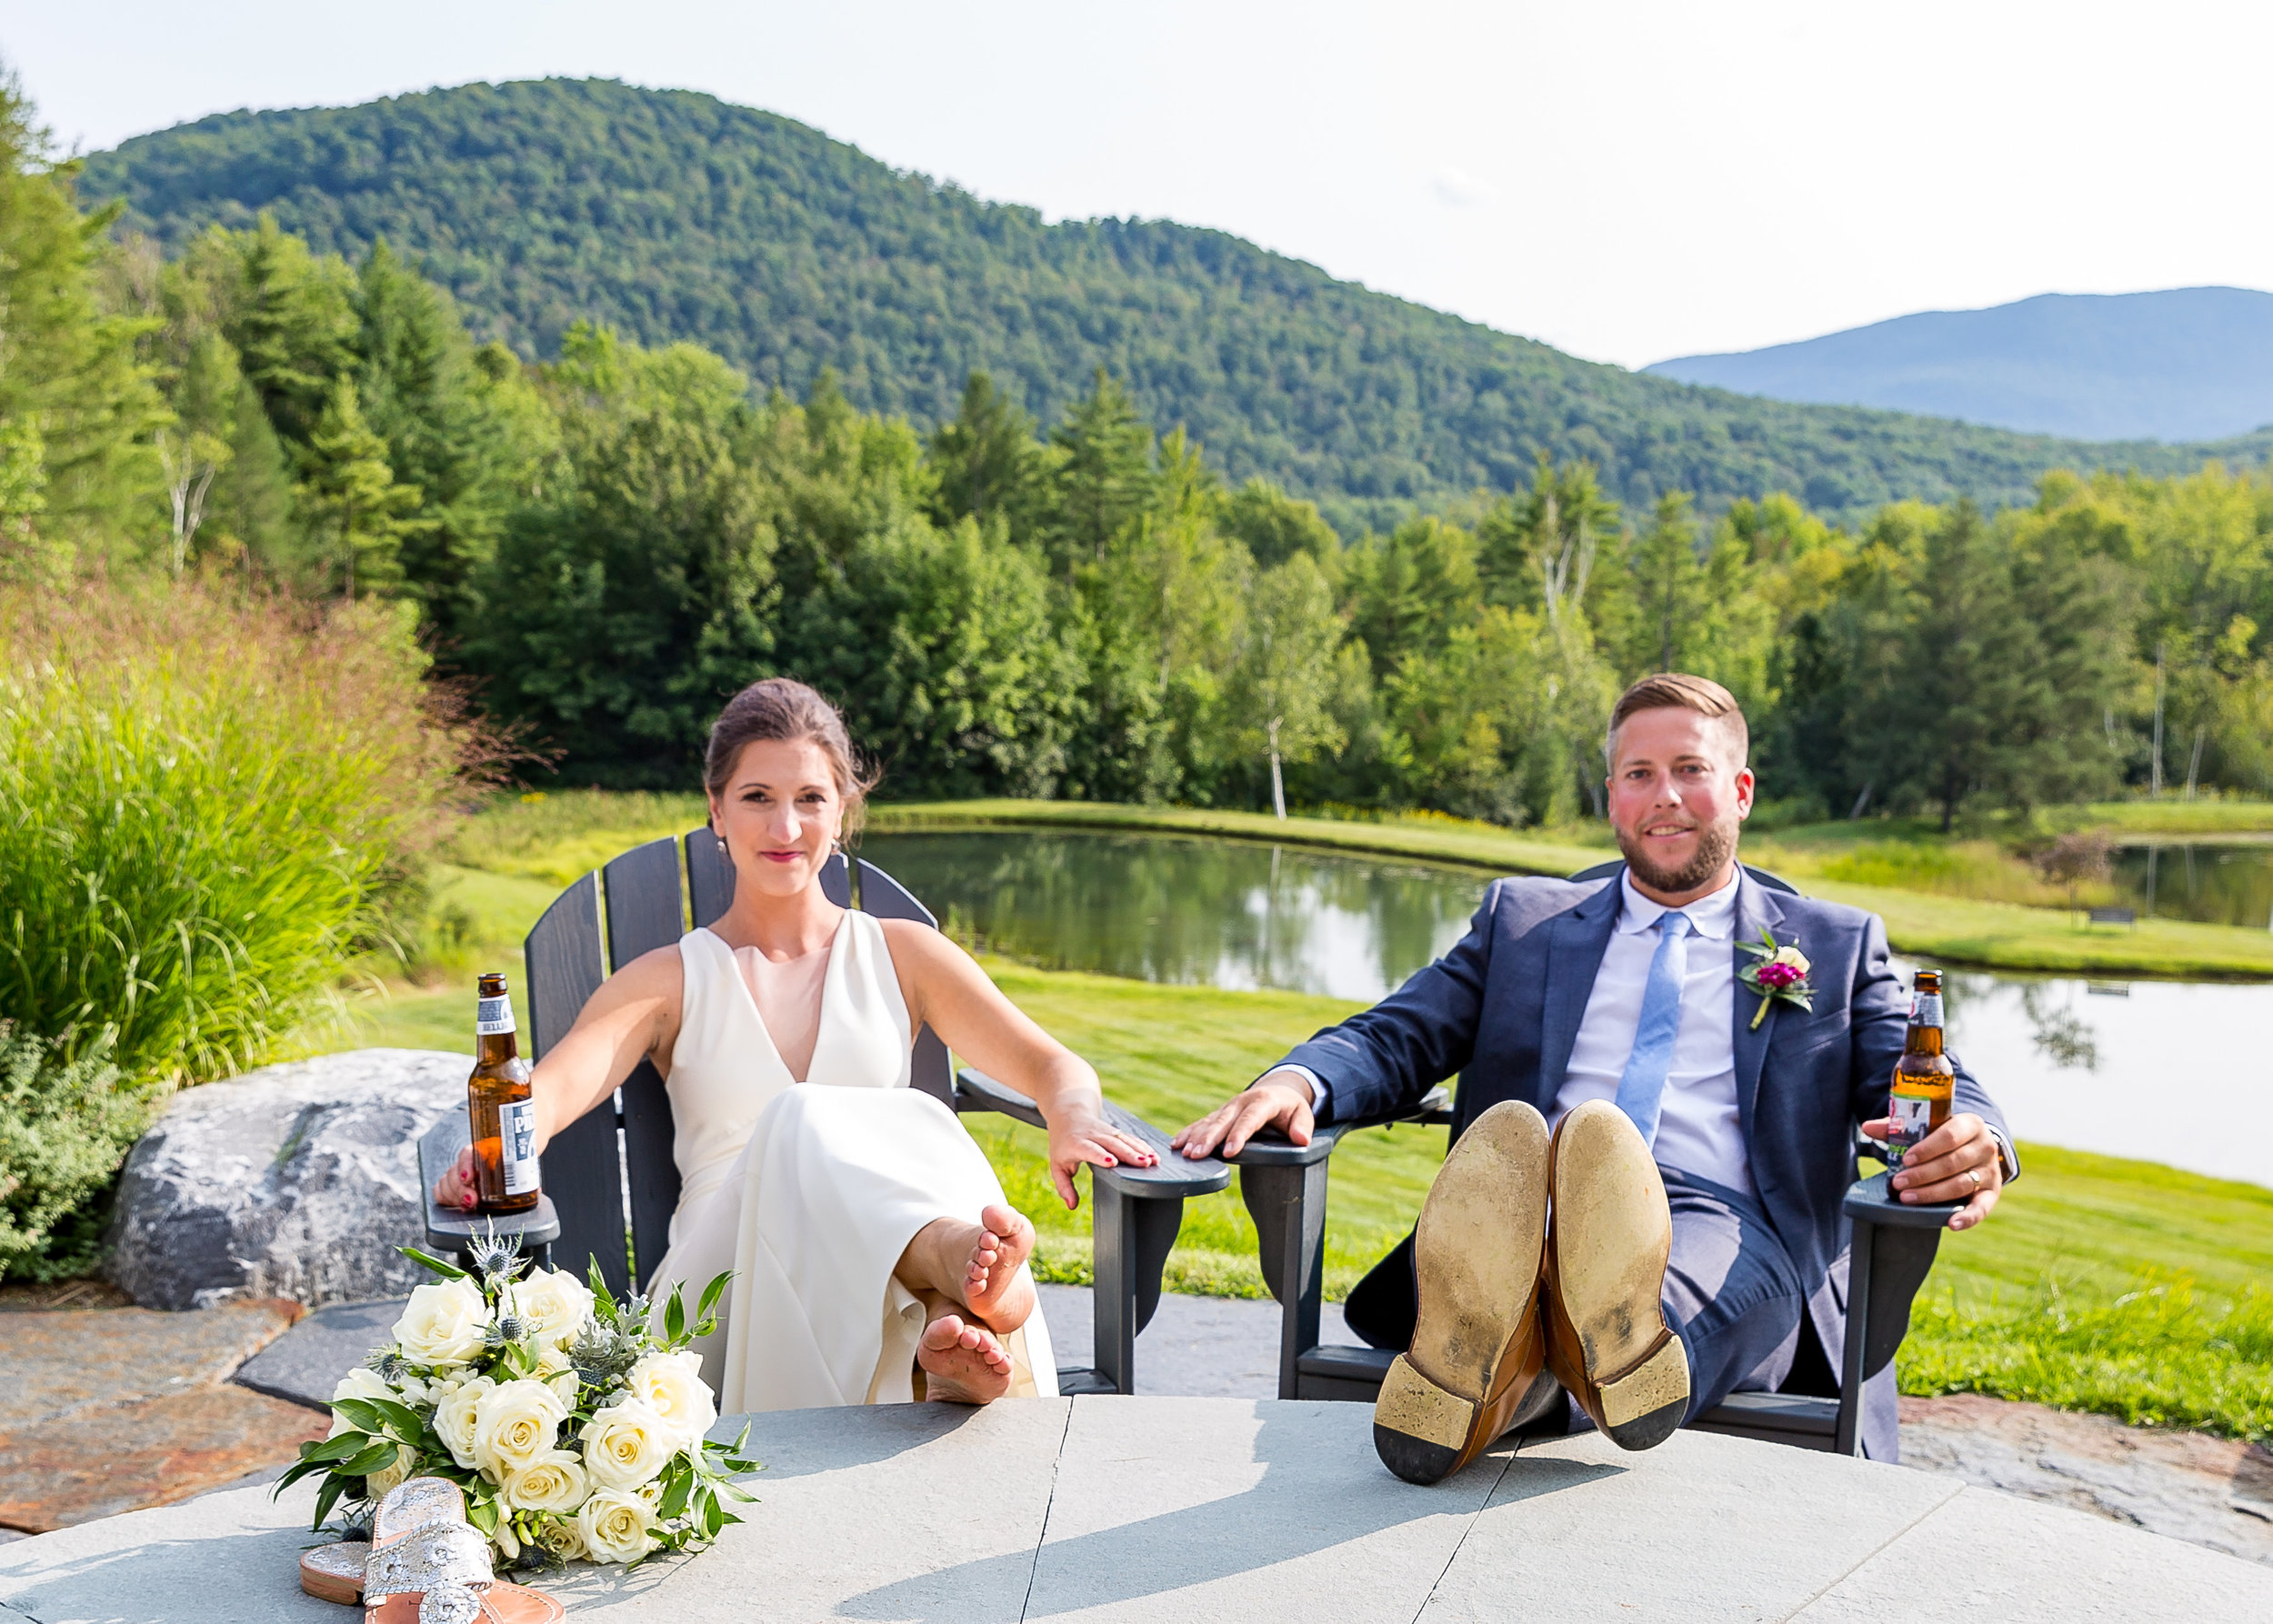 Sara and Sam loved exploring New England Bed and Breakfasts while they were dating